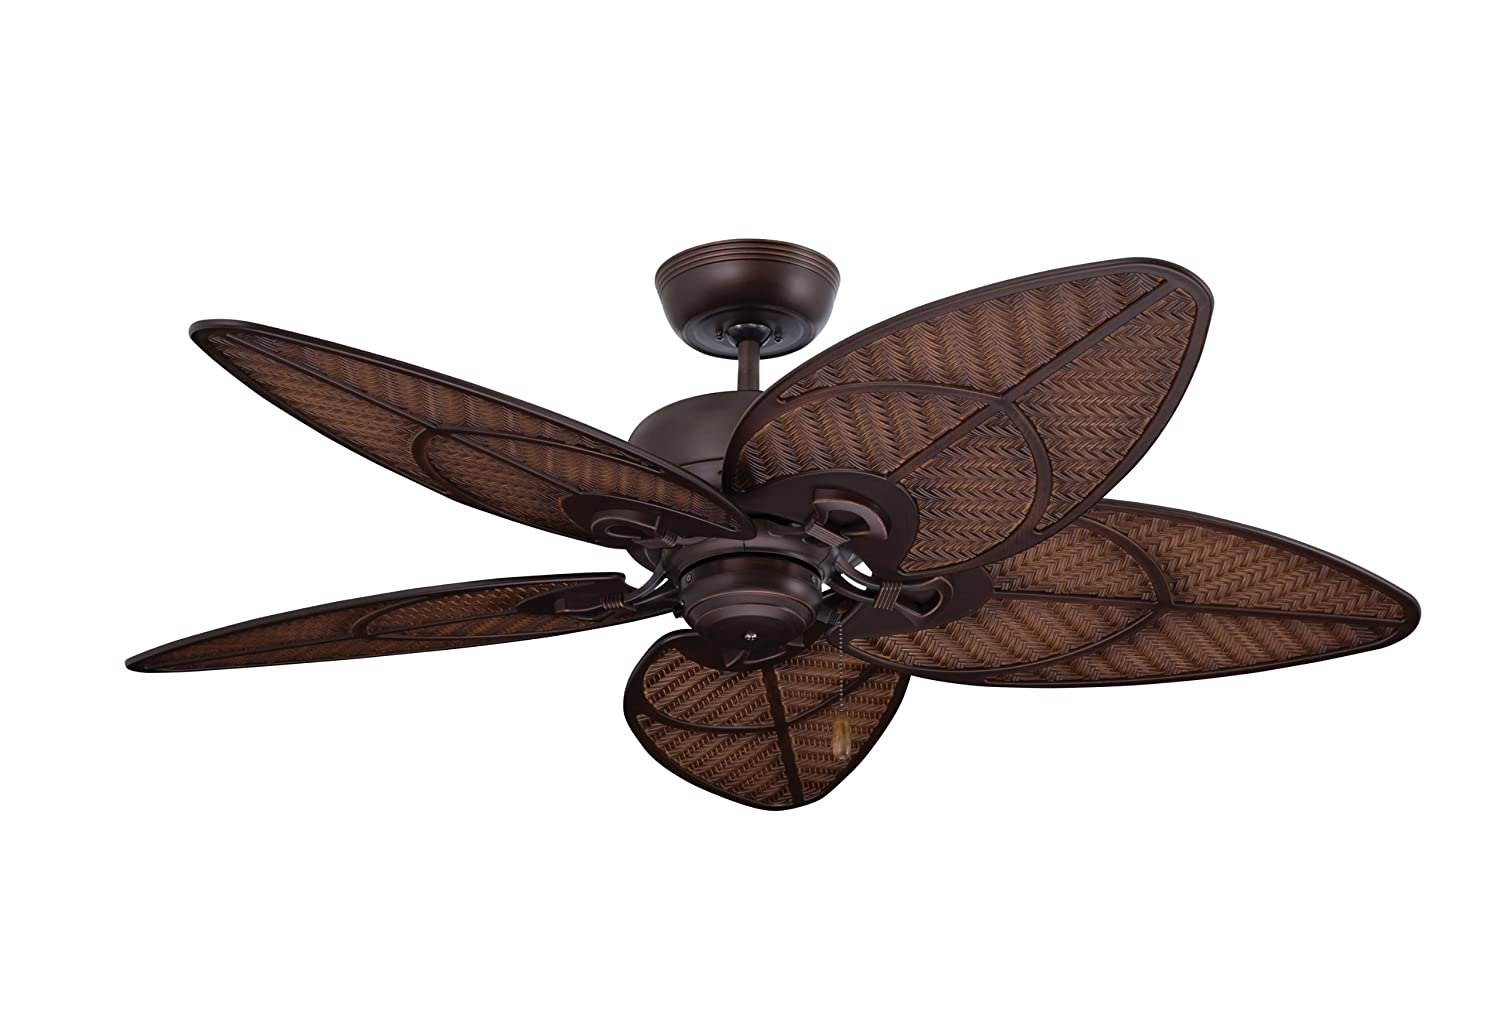 Emerson ceiling fans cf621vnb batalie breeze 52 inch indoor outdoor emerson ceiling fans cf621vnb batalie breeze 52 inch indoor outdoor ceiling fan wet rated light kit adaptable venetian bronze finish amazon aloadofball Image collections